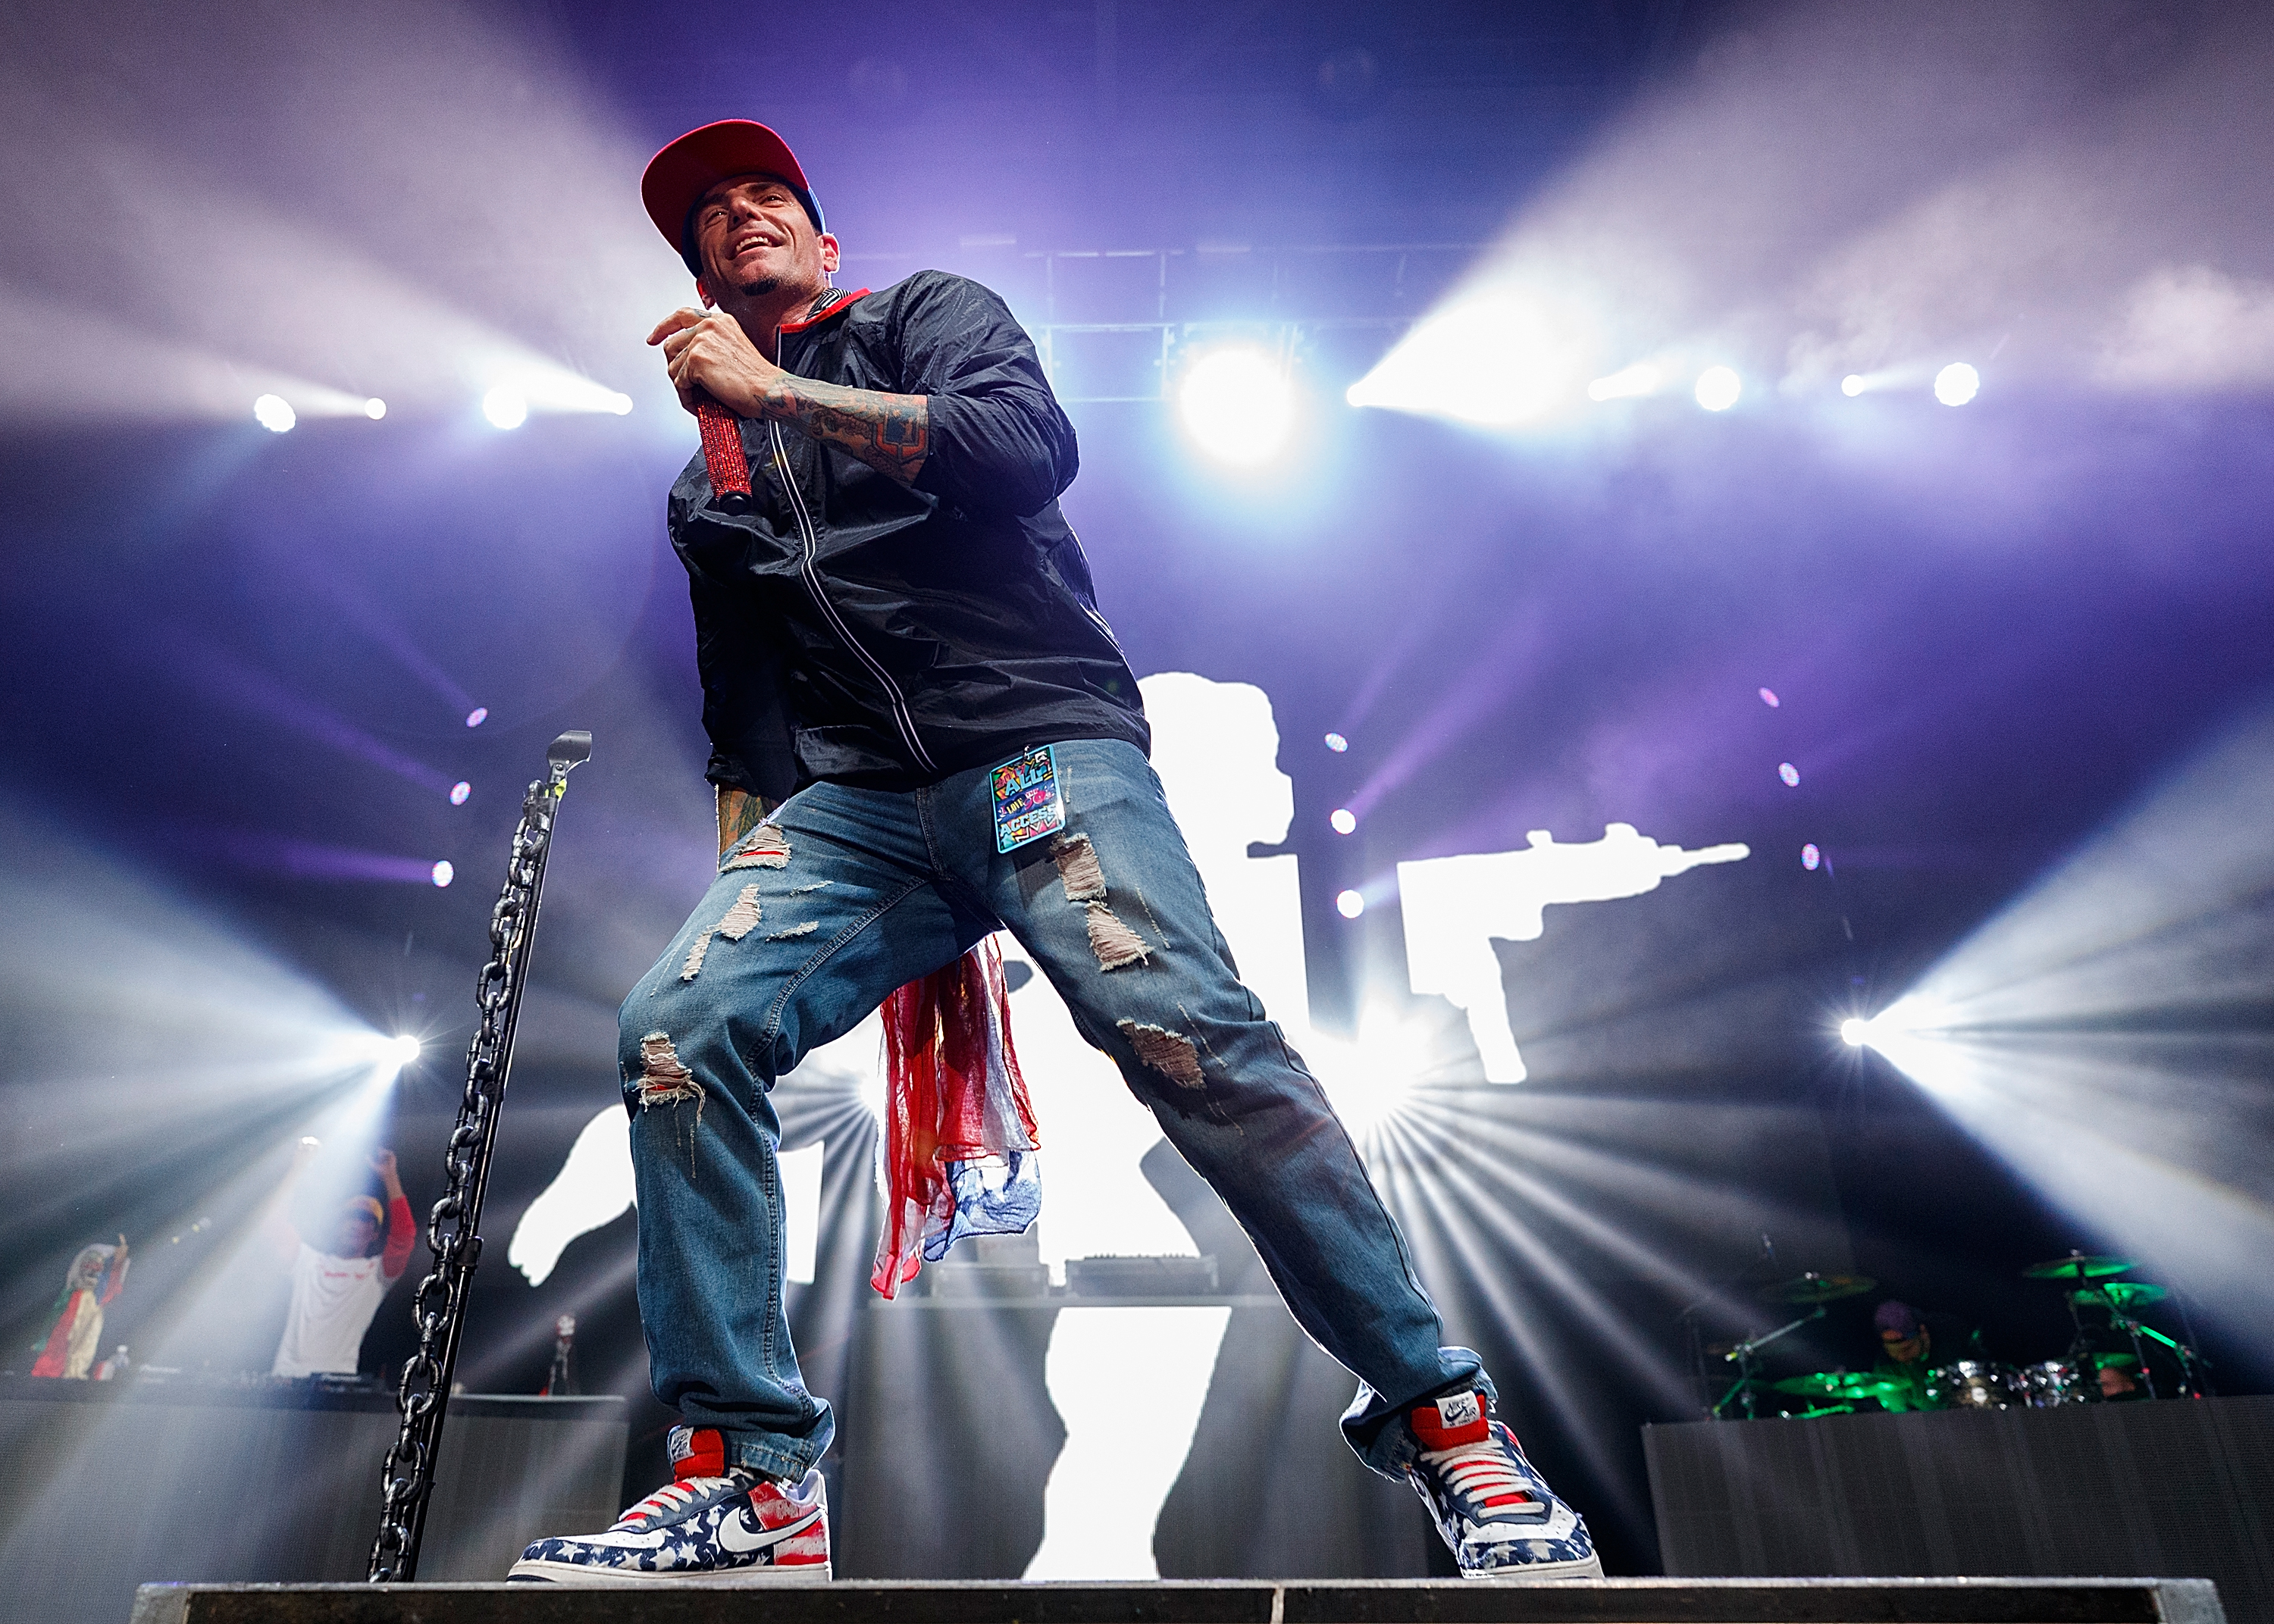 VANILLA ICE CLAIMS HE BOUGHT 'UNDER PRESSURE,' QUEEN SAYS